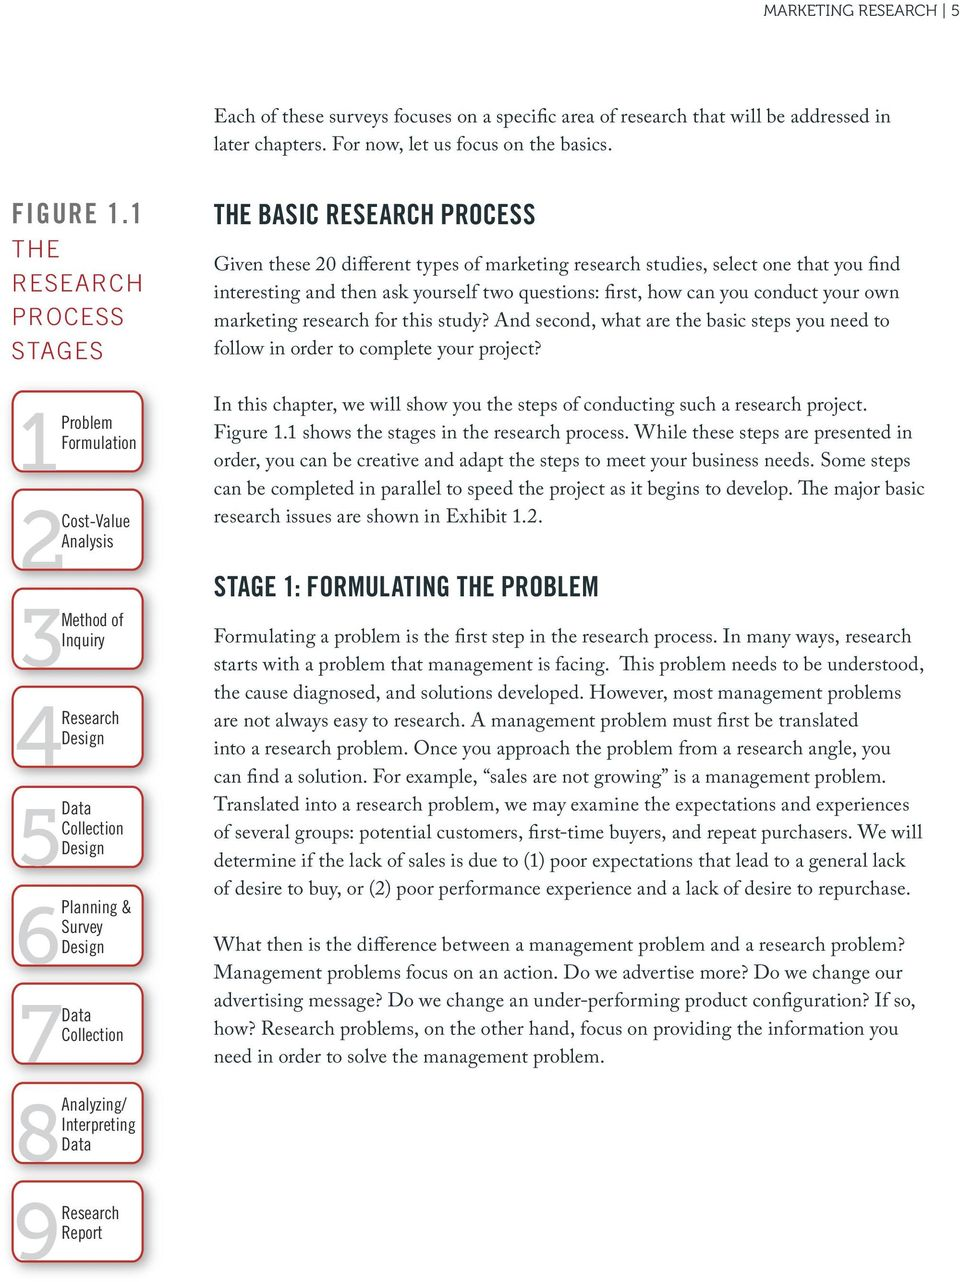 PROCESS Given these 20 different types of marketing research studies, select one that you find interesting and then ask yourself two questions: first, how can you conduct your own marketing research